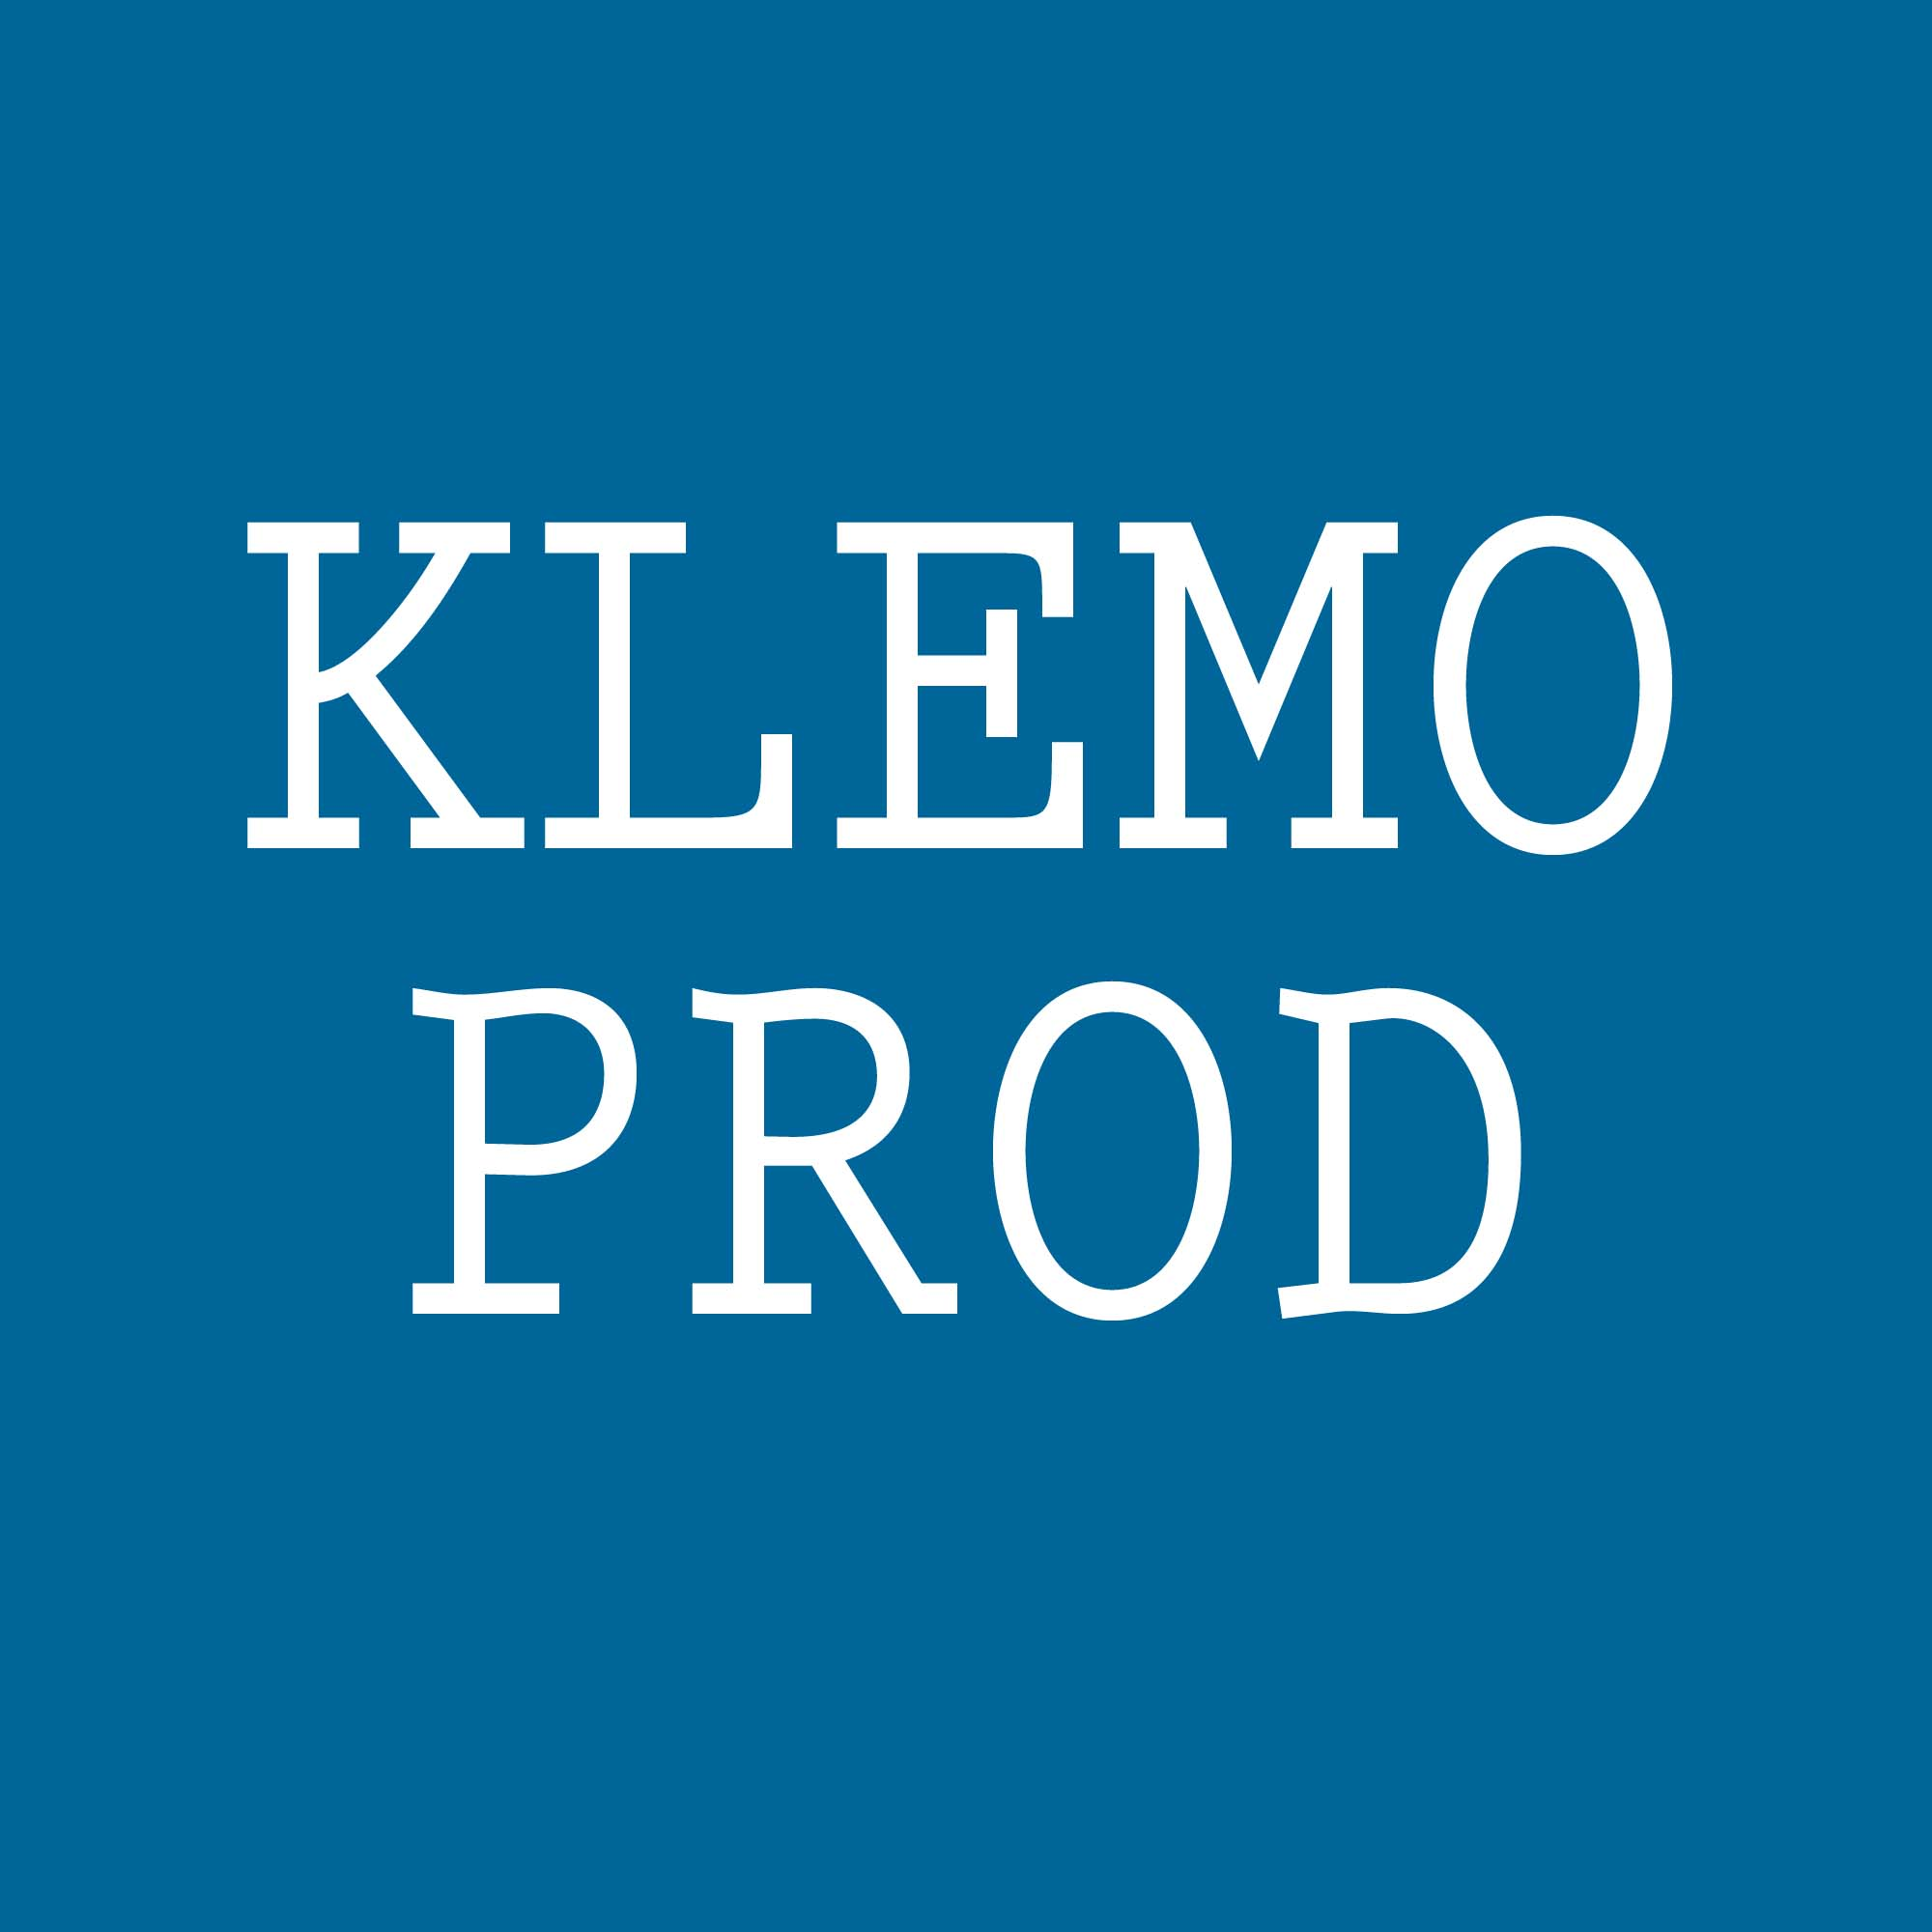 Klemo Production